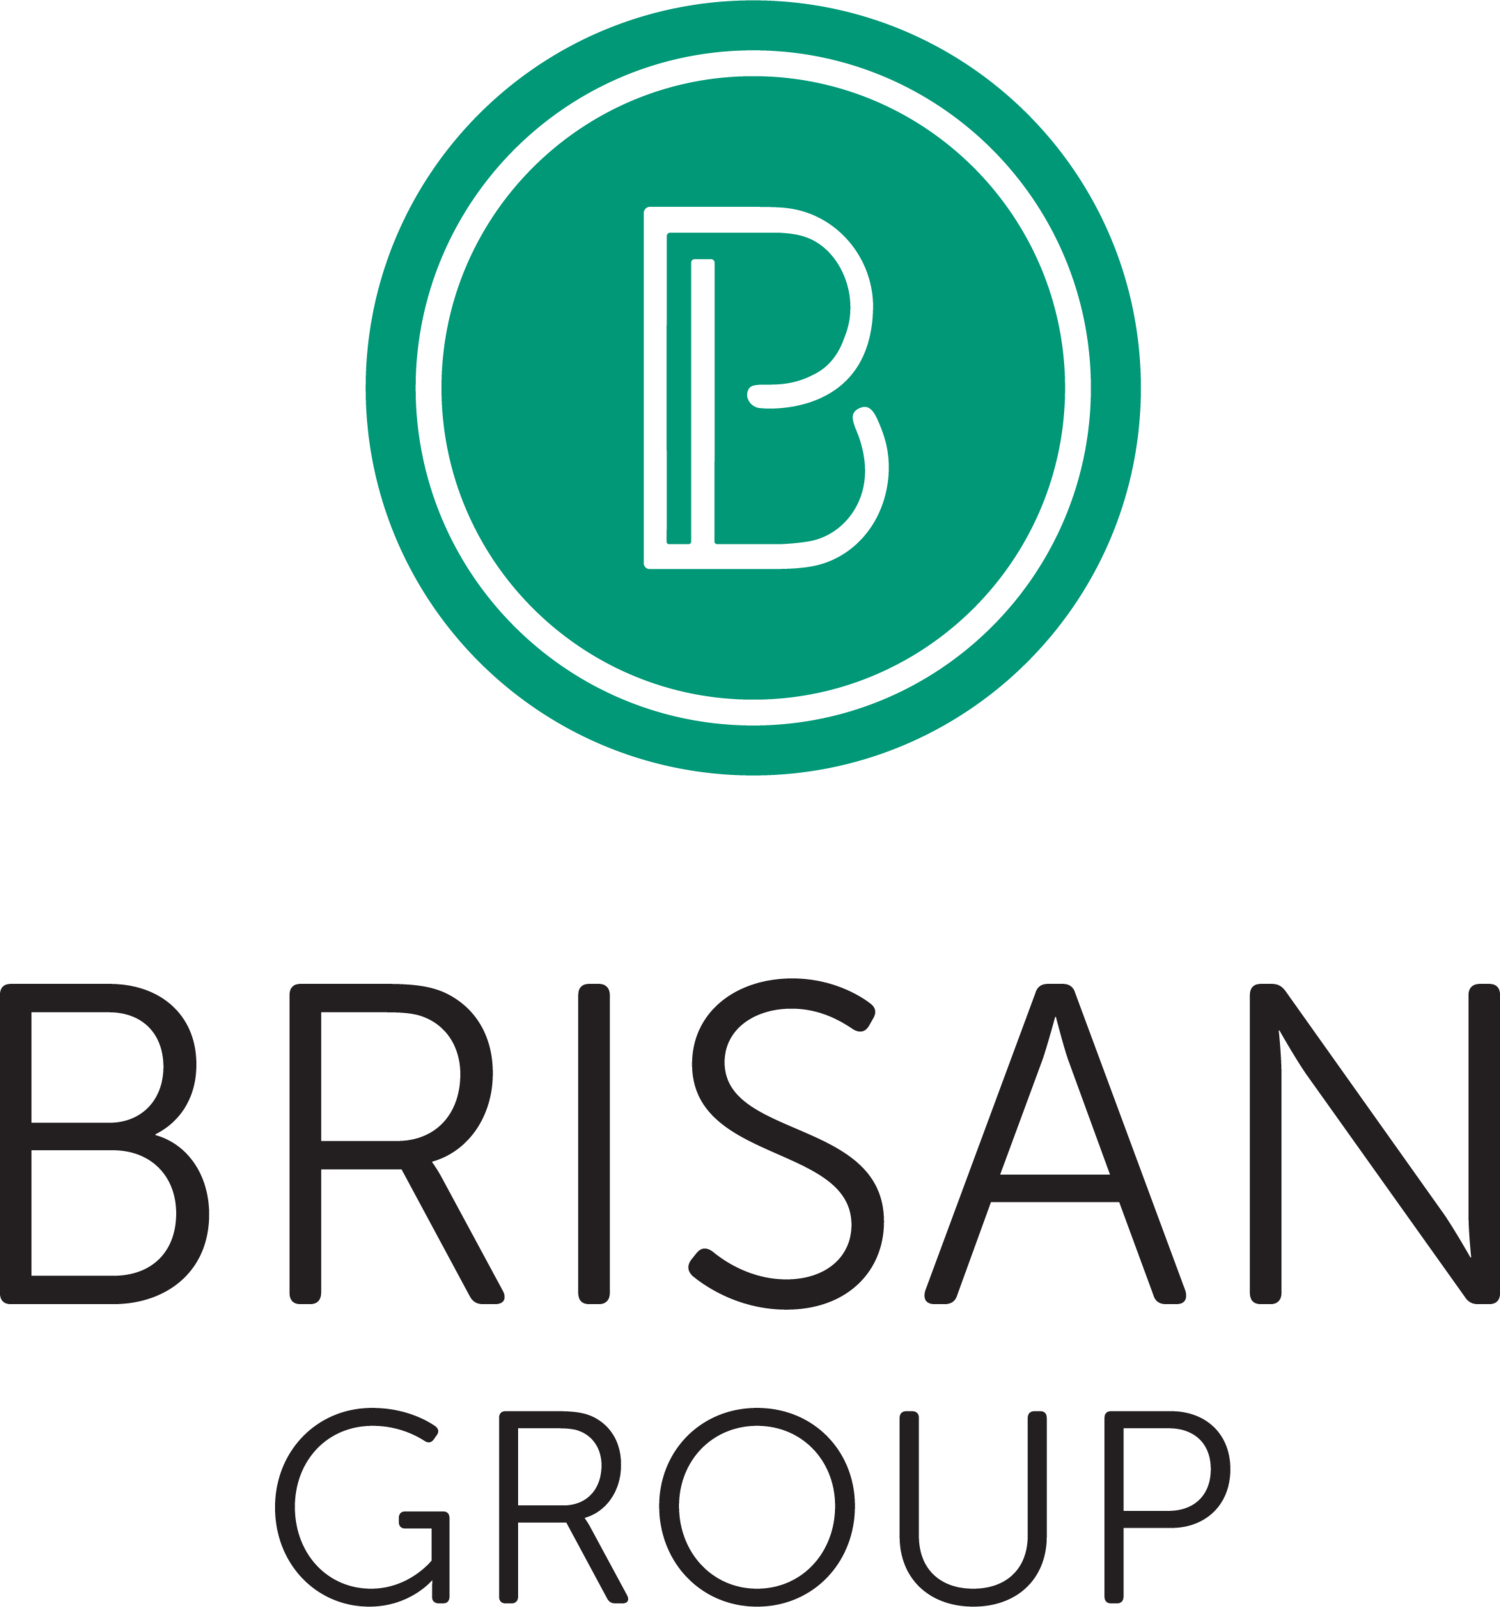 Food & Beverage Commercialization | Brisan Group